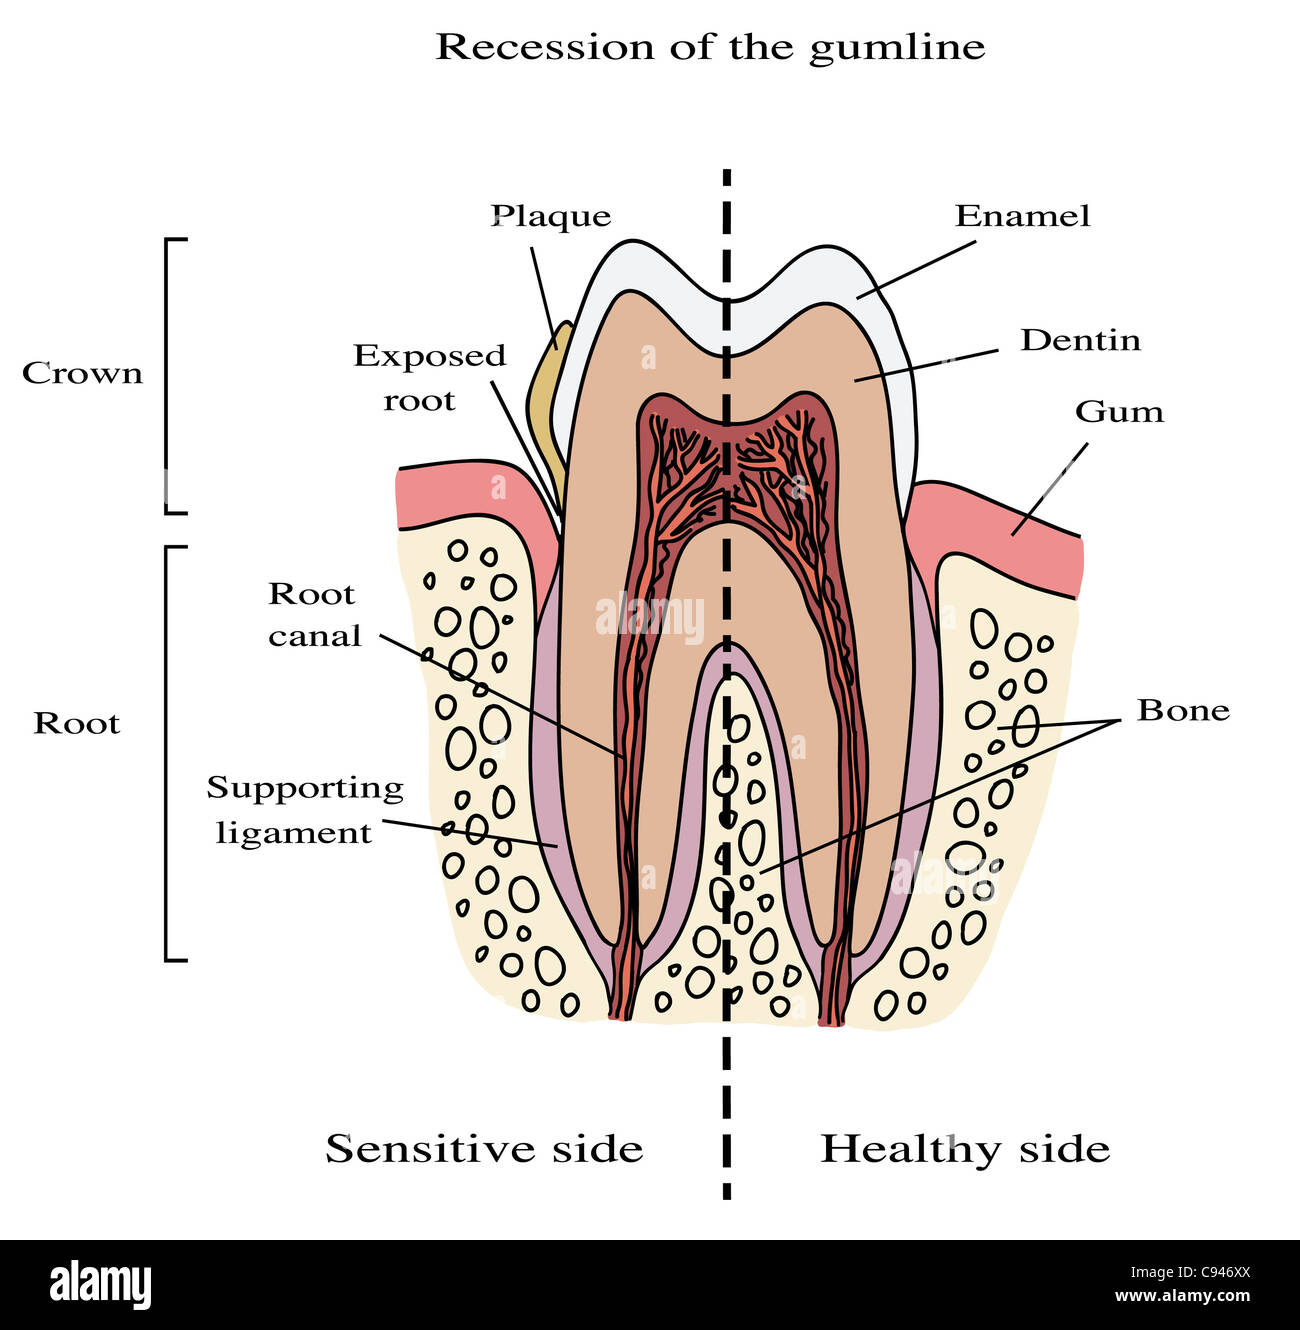 Human tooth anatomy illustration - recession of the gumline Stock ...